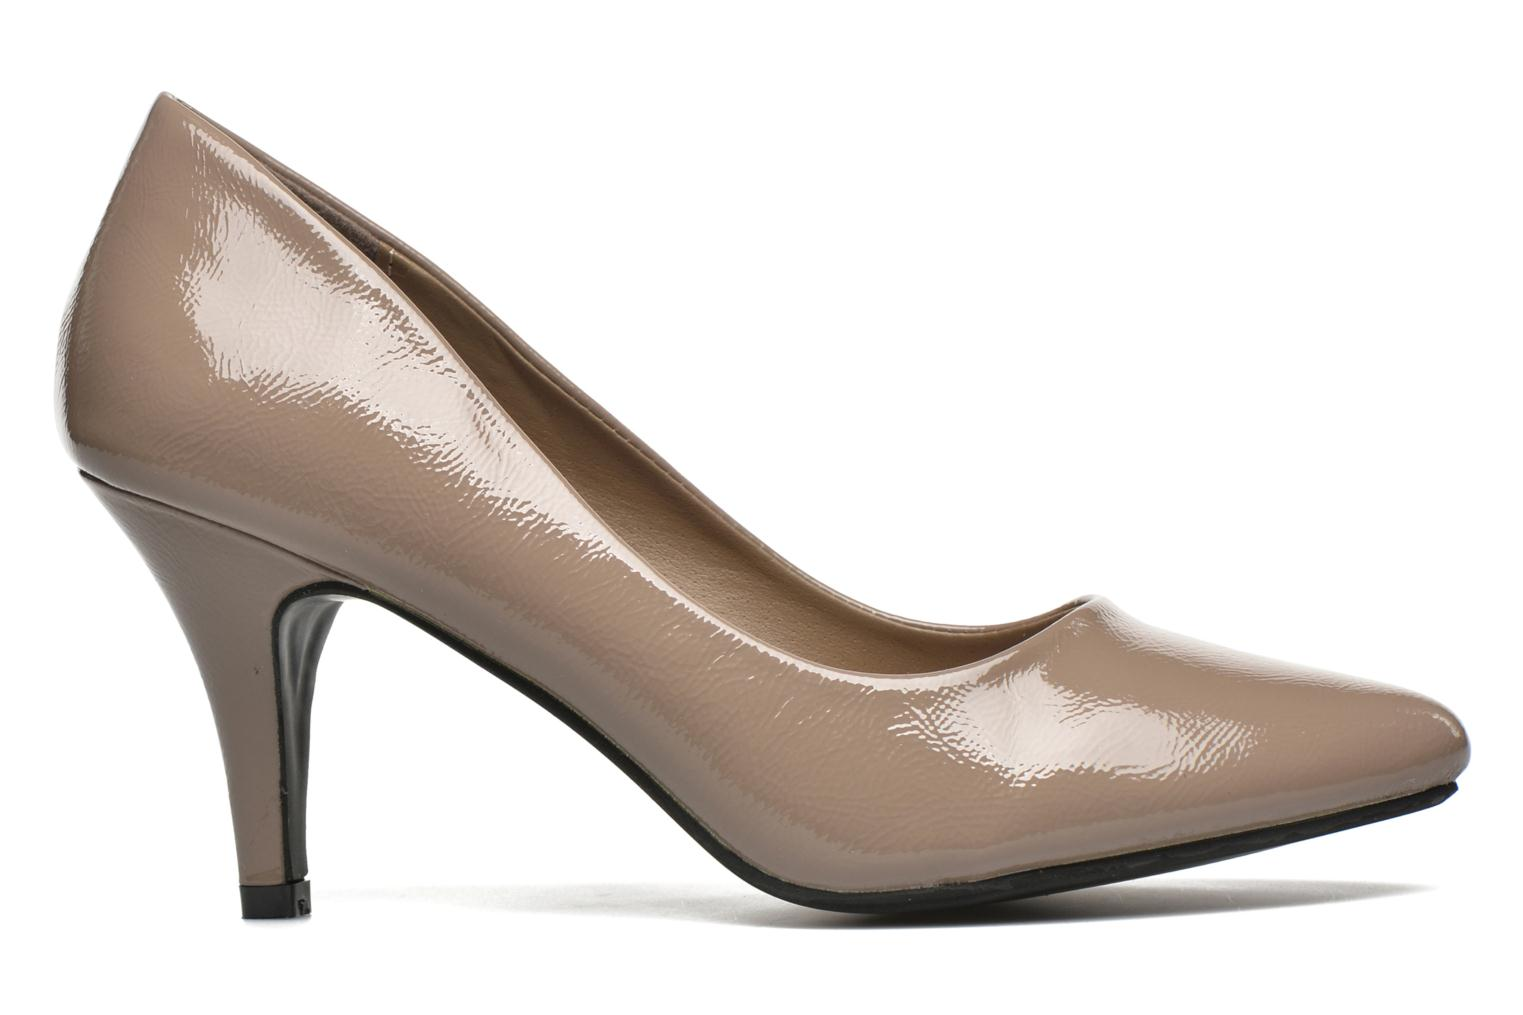 KIPOINT TAUPE PATENT